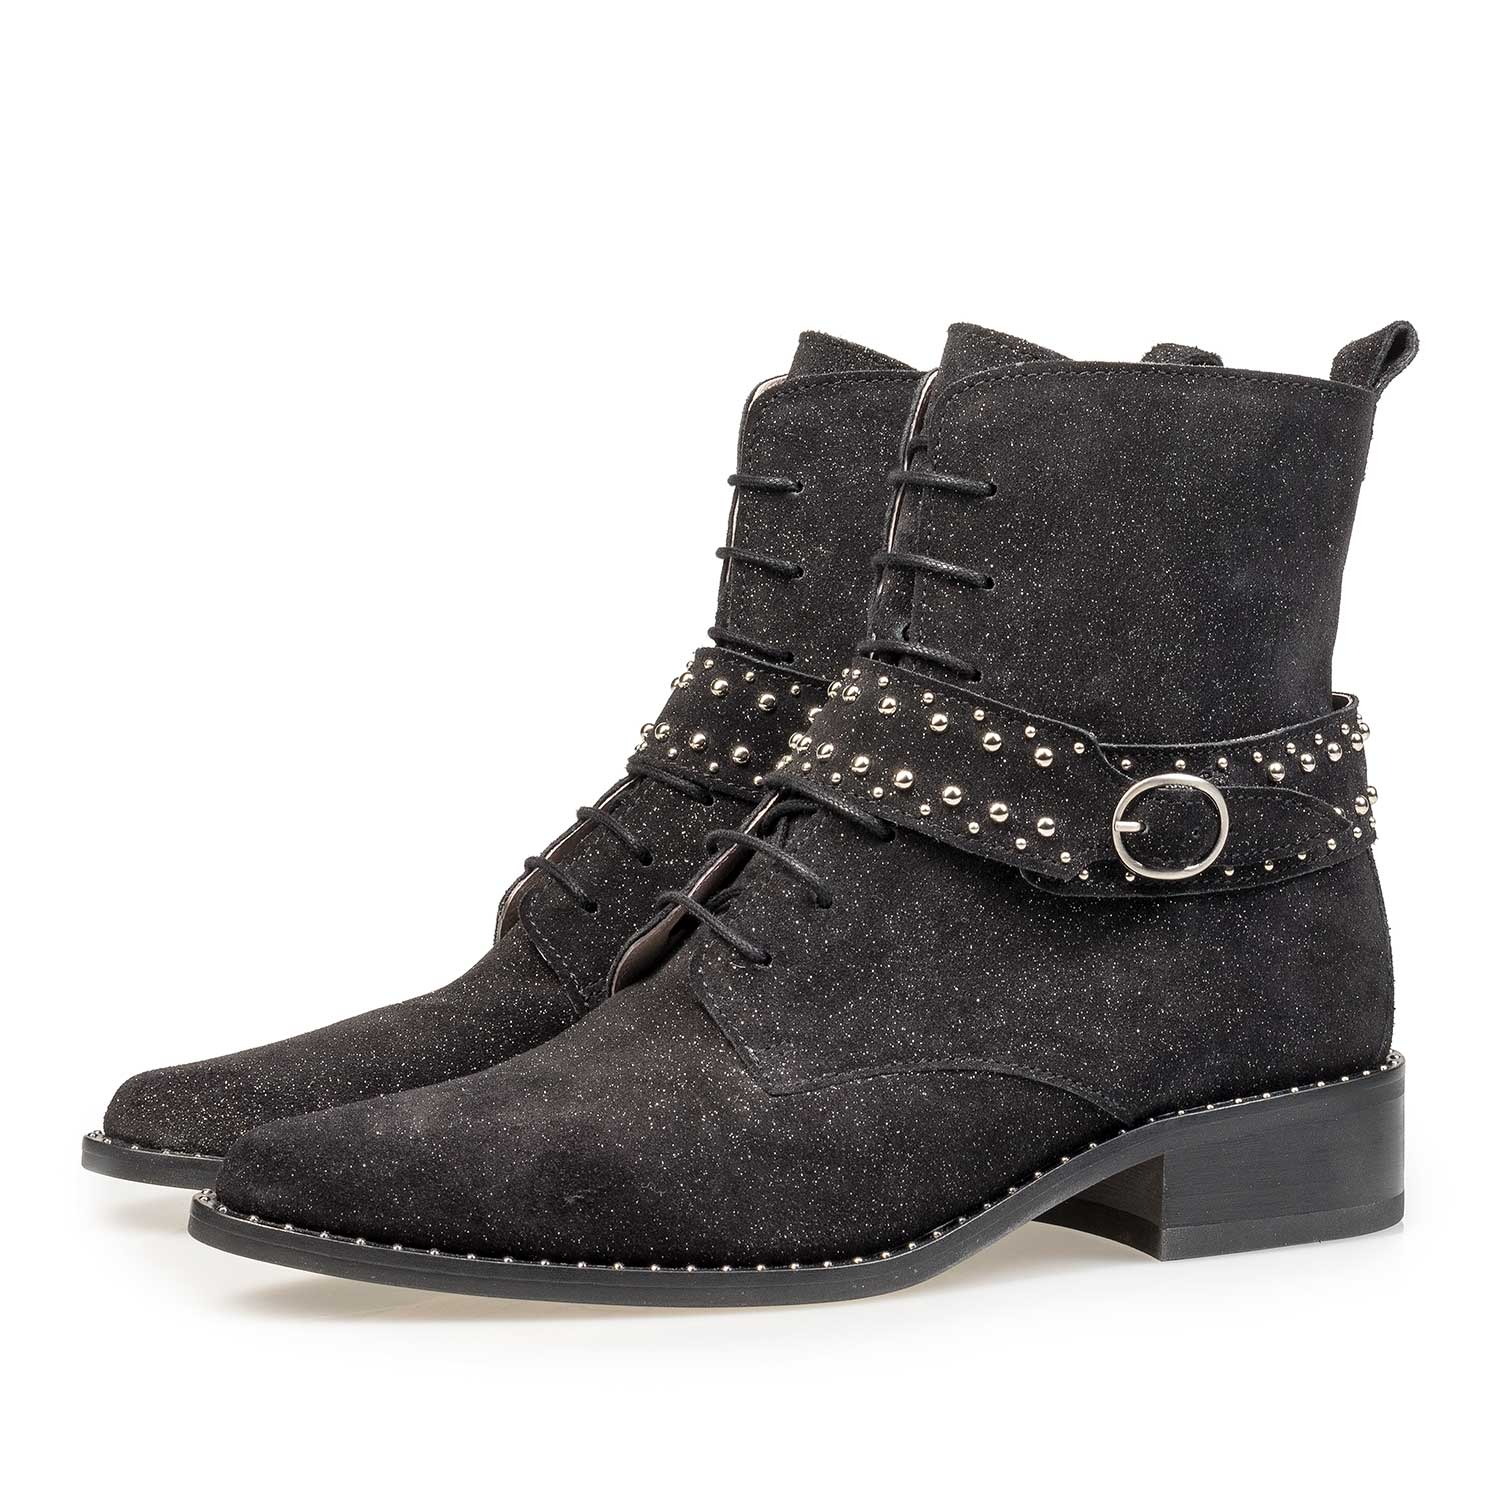 85618/01 - Black suede biker boot with glitter effect